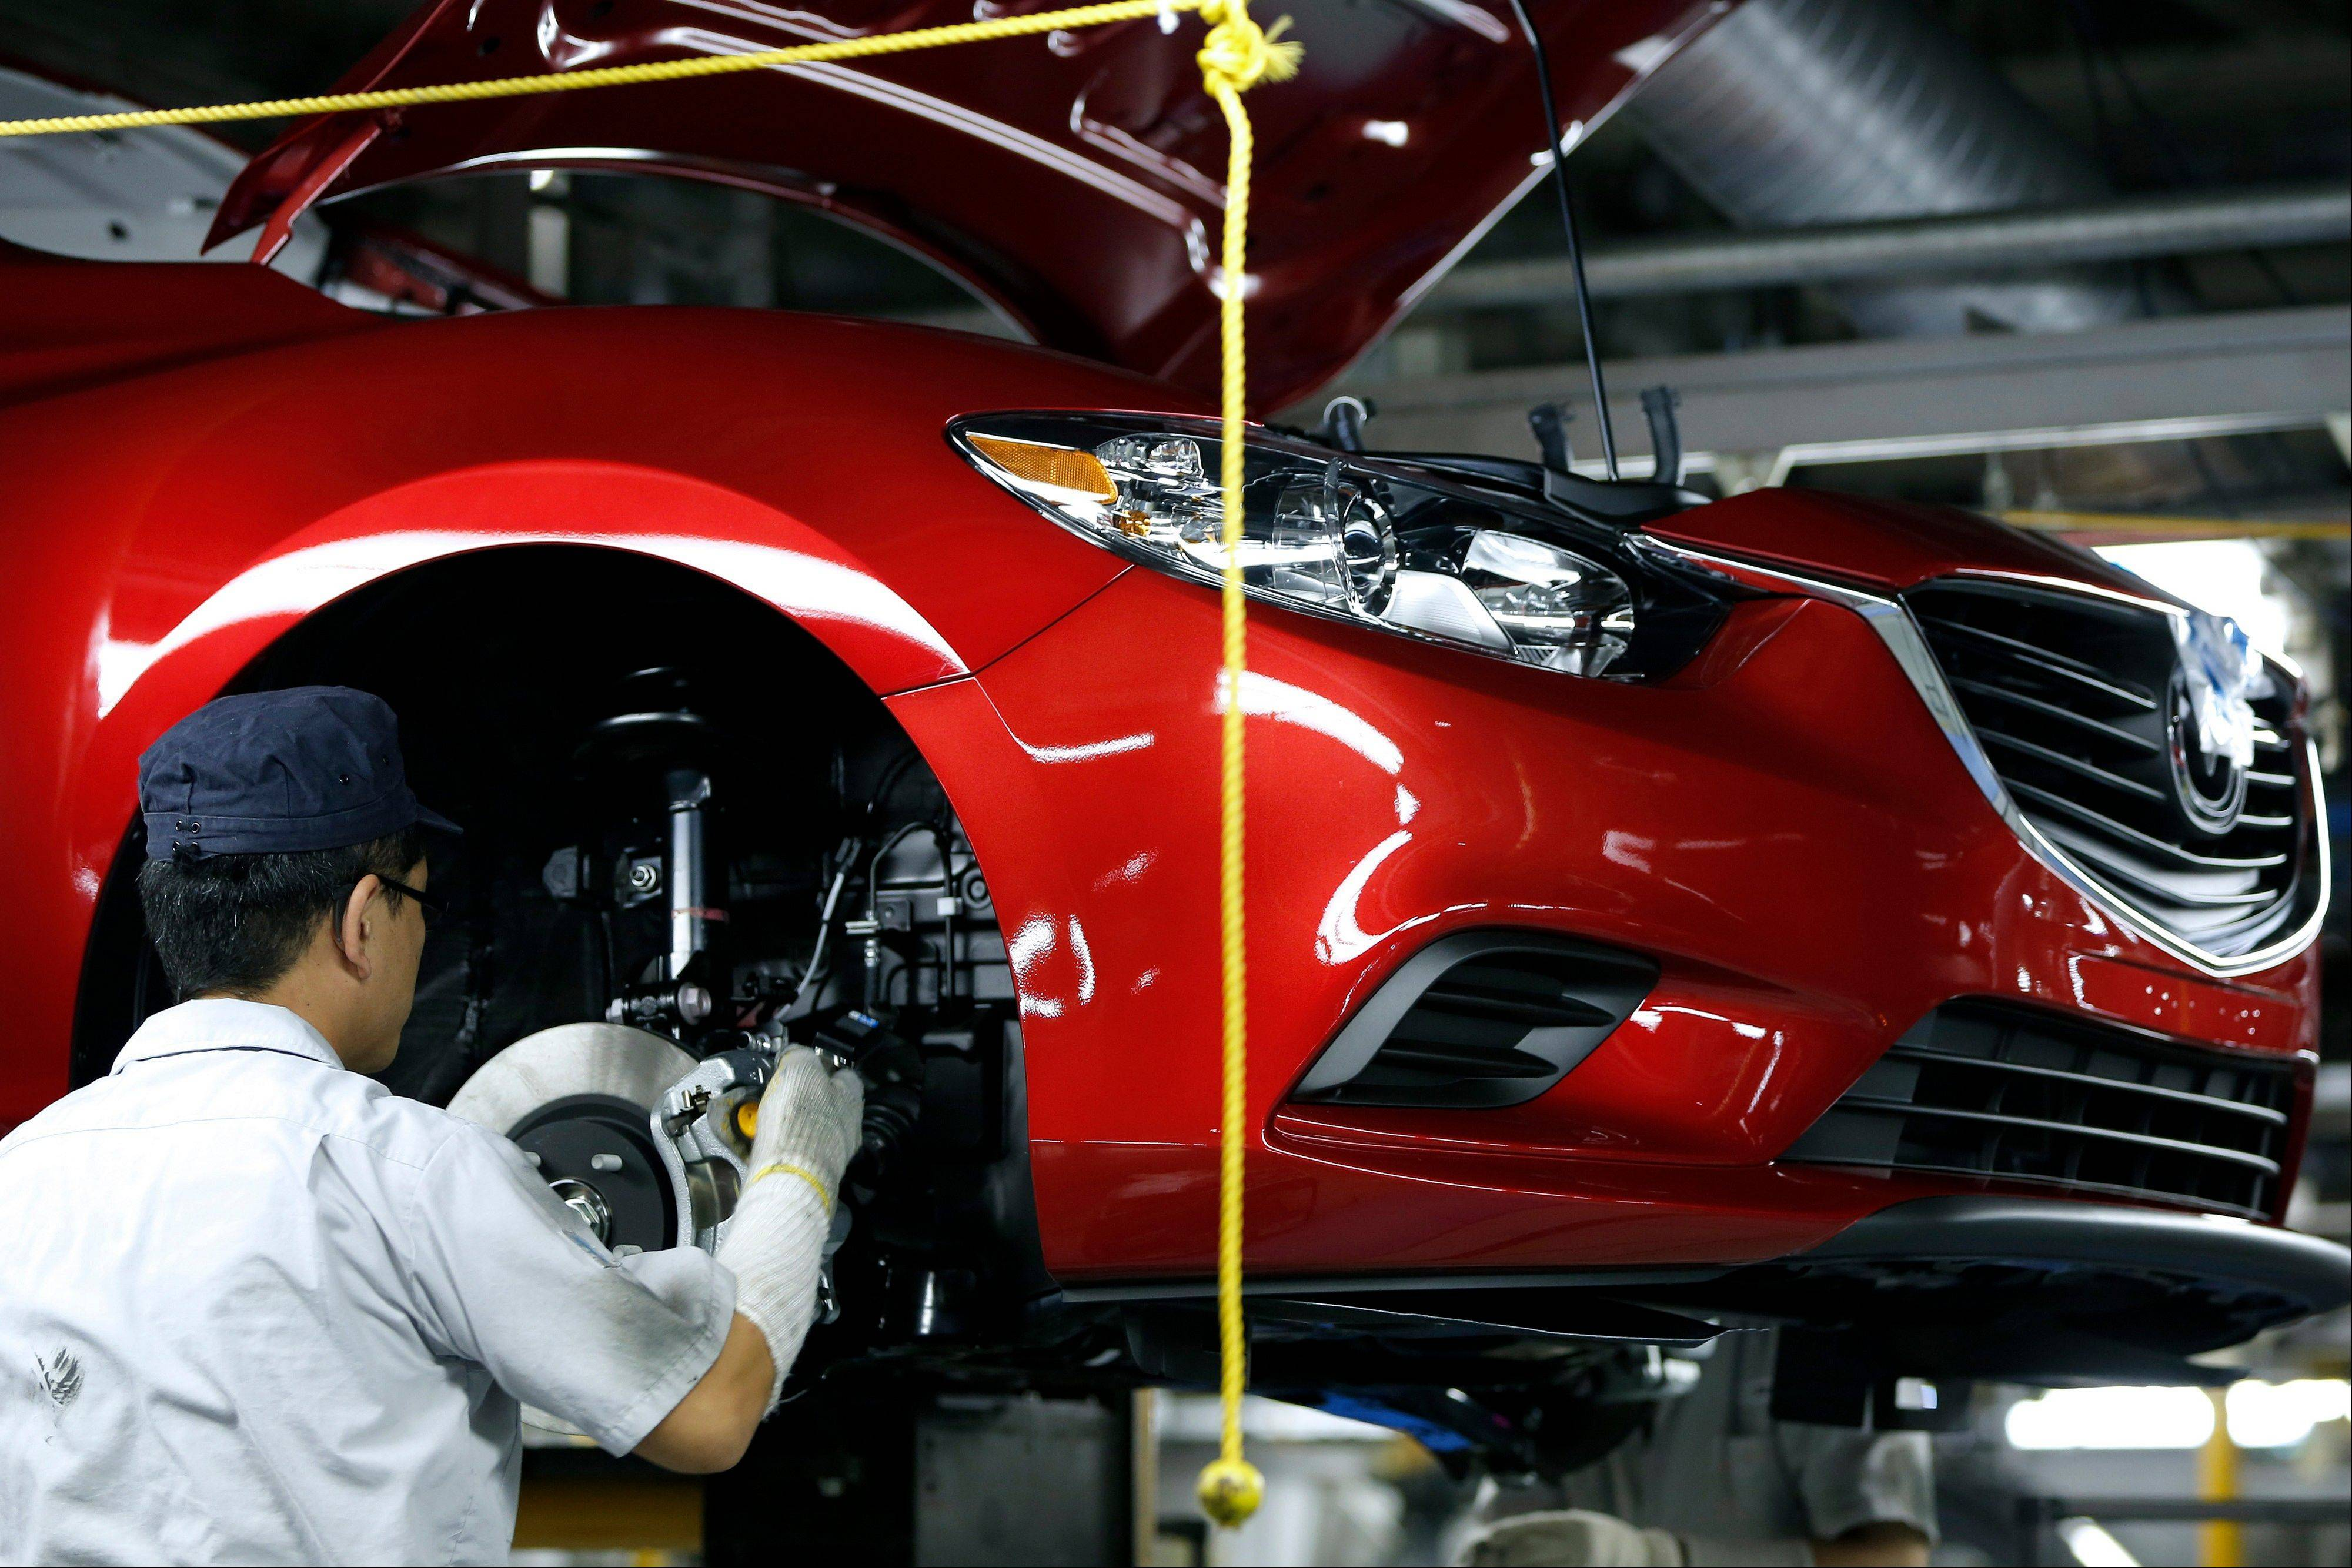 An employee assembles a Mazda Motor Corp. Atenza sedan (Mazda 6) on the production line at the company's plant in Hofu, Yamaguchi Prefecture, Japan, on Tuesday, Aug. 27, 2013. Mazda is Japan's most export-dependent carmaker.